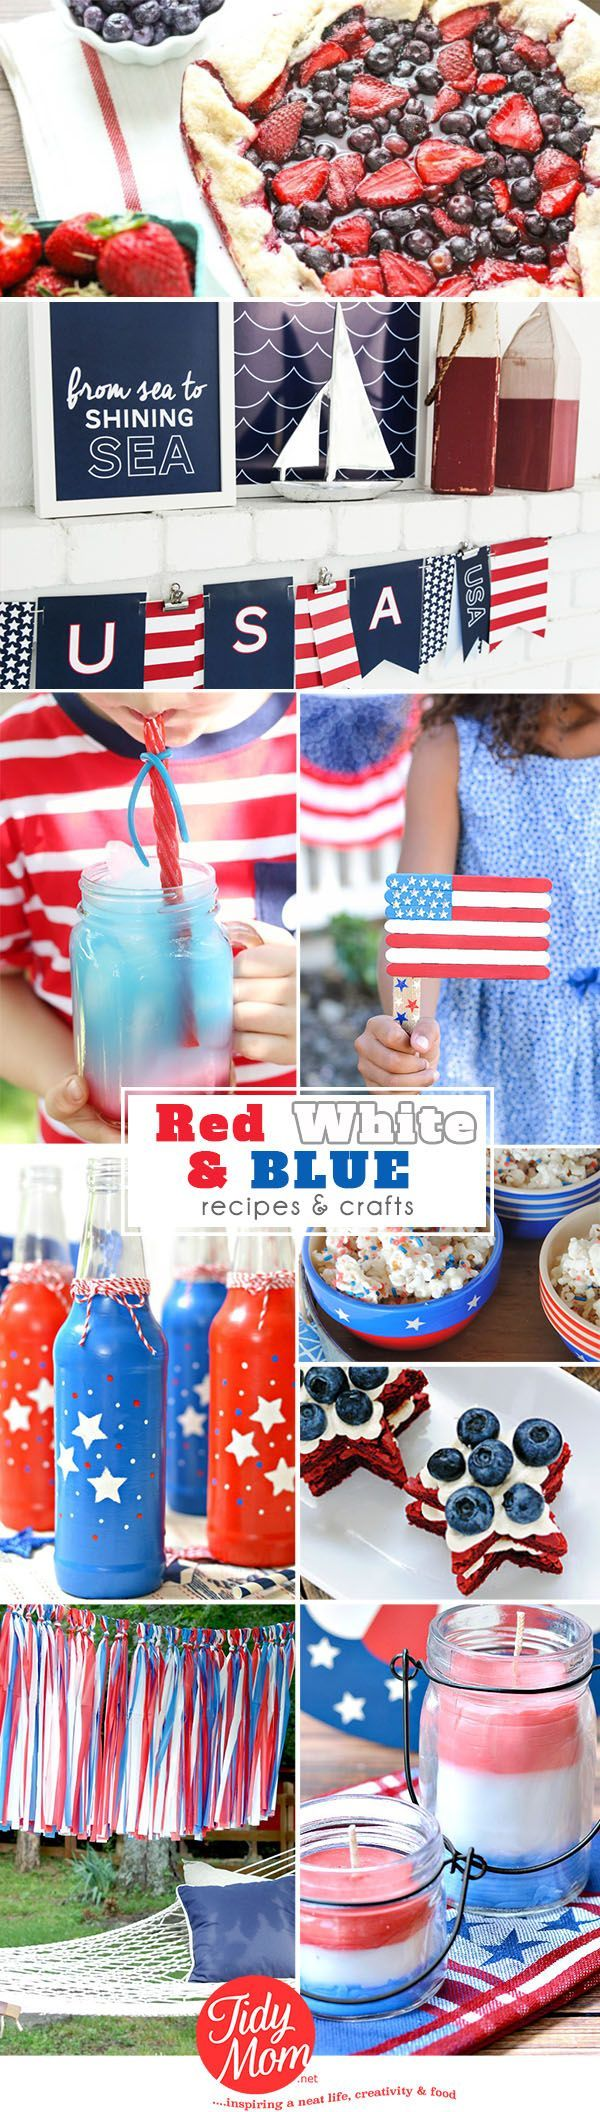 incredible Red White and Blue Ideas for patriotic decorating, crafting and eating! Pair these ideas with a hot grill and sparklers and there's no excuse not to celebrate America's birthday in style!  Details at TidyMom.net